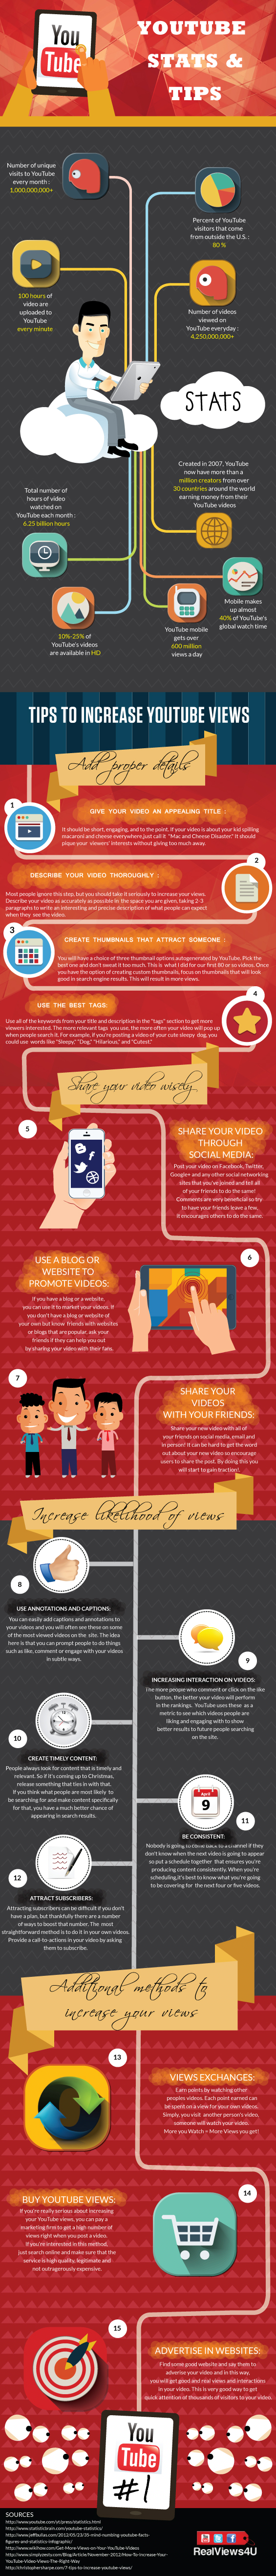 Increase-YouTube-Views-Infographic